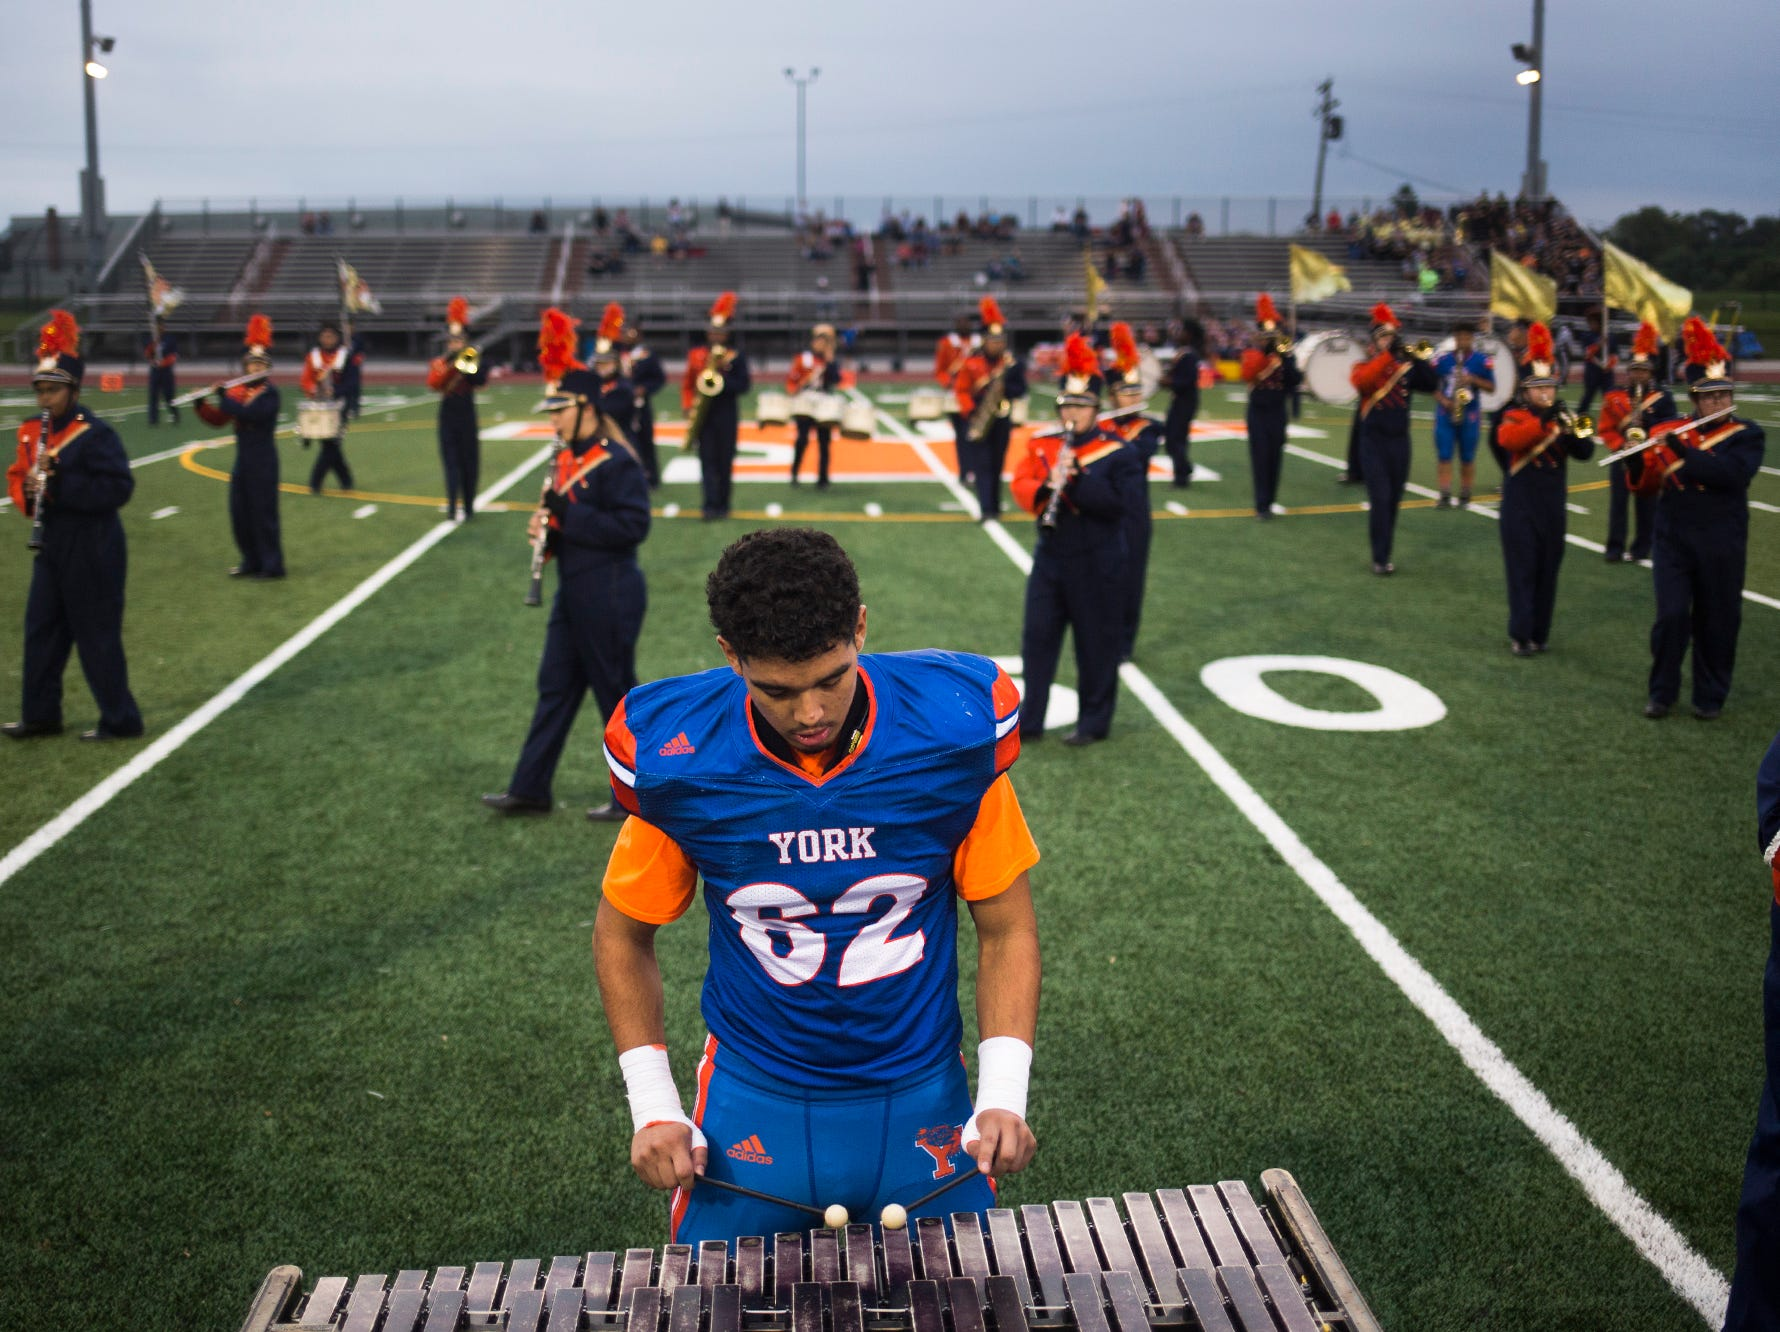 The York High High School marching band, including Bearcats player William Molina, performs prior to the game. York High defeats New Oxford 71-14 in football at Small Athletic Field in York, Friday, September 14, 2018.